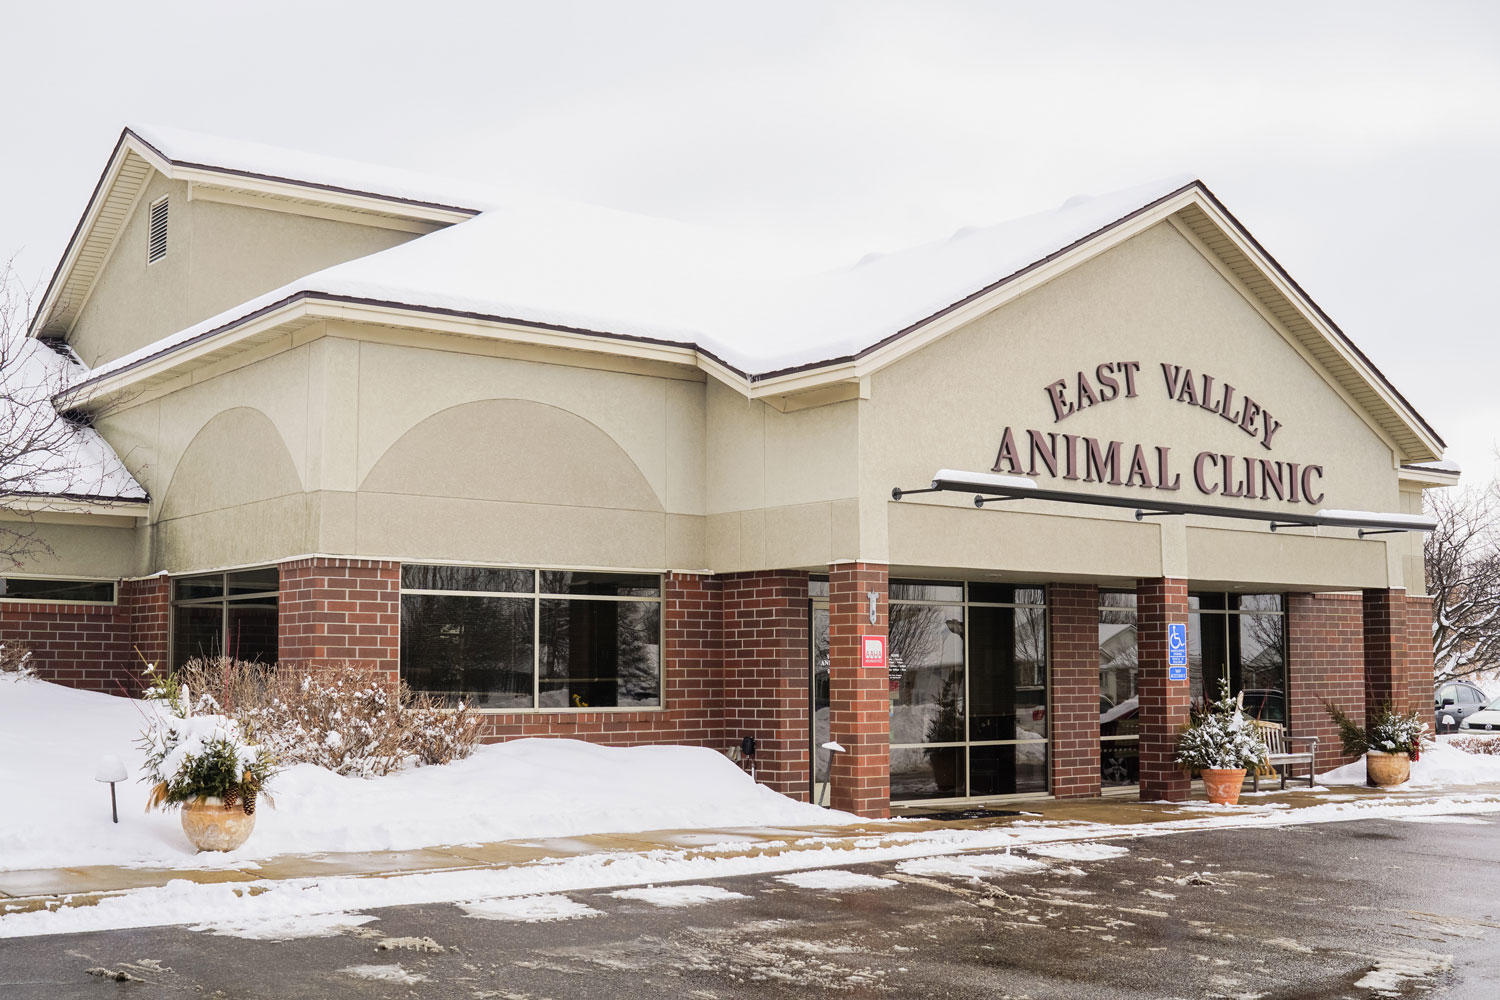 East Valley Animal Clinic image 2